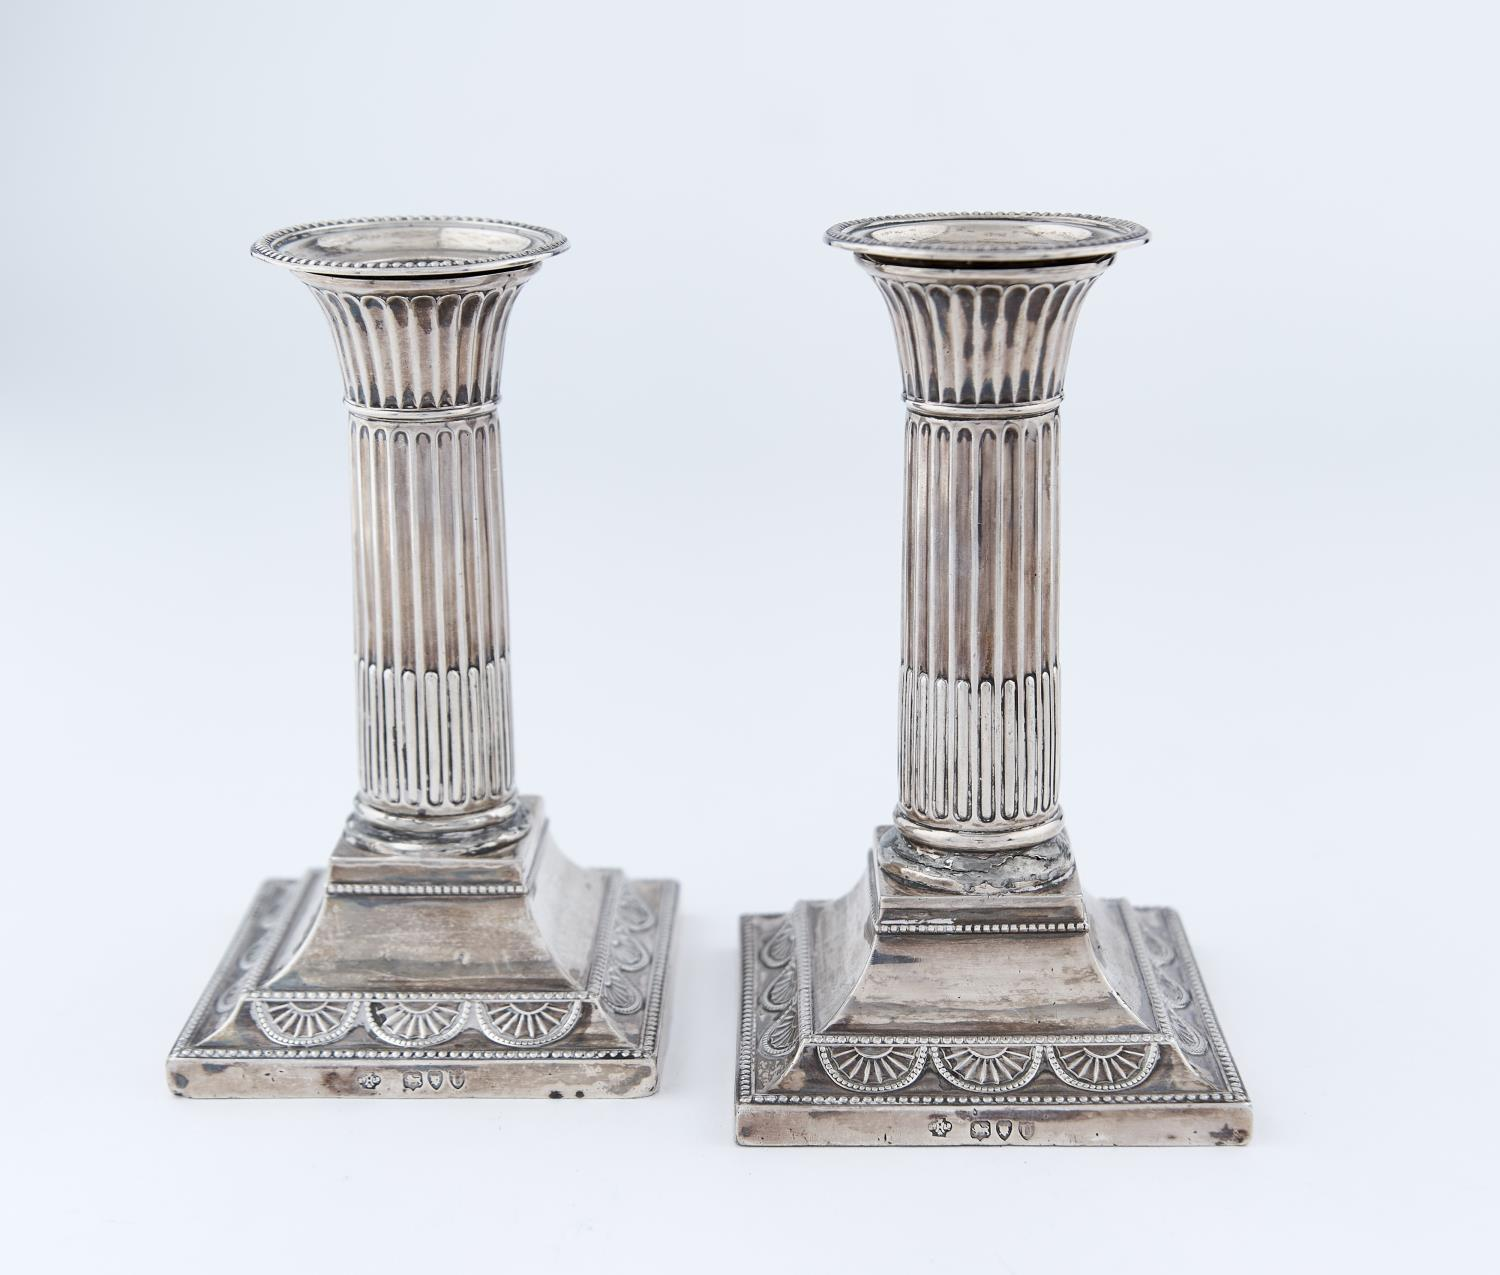 A PAIR OF VICTORIAN SILVER DWARF COLUMNAR SILVER CANDLESTICKS, THE BEADED SQUARE CAVETTO FOOT